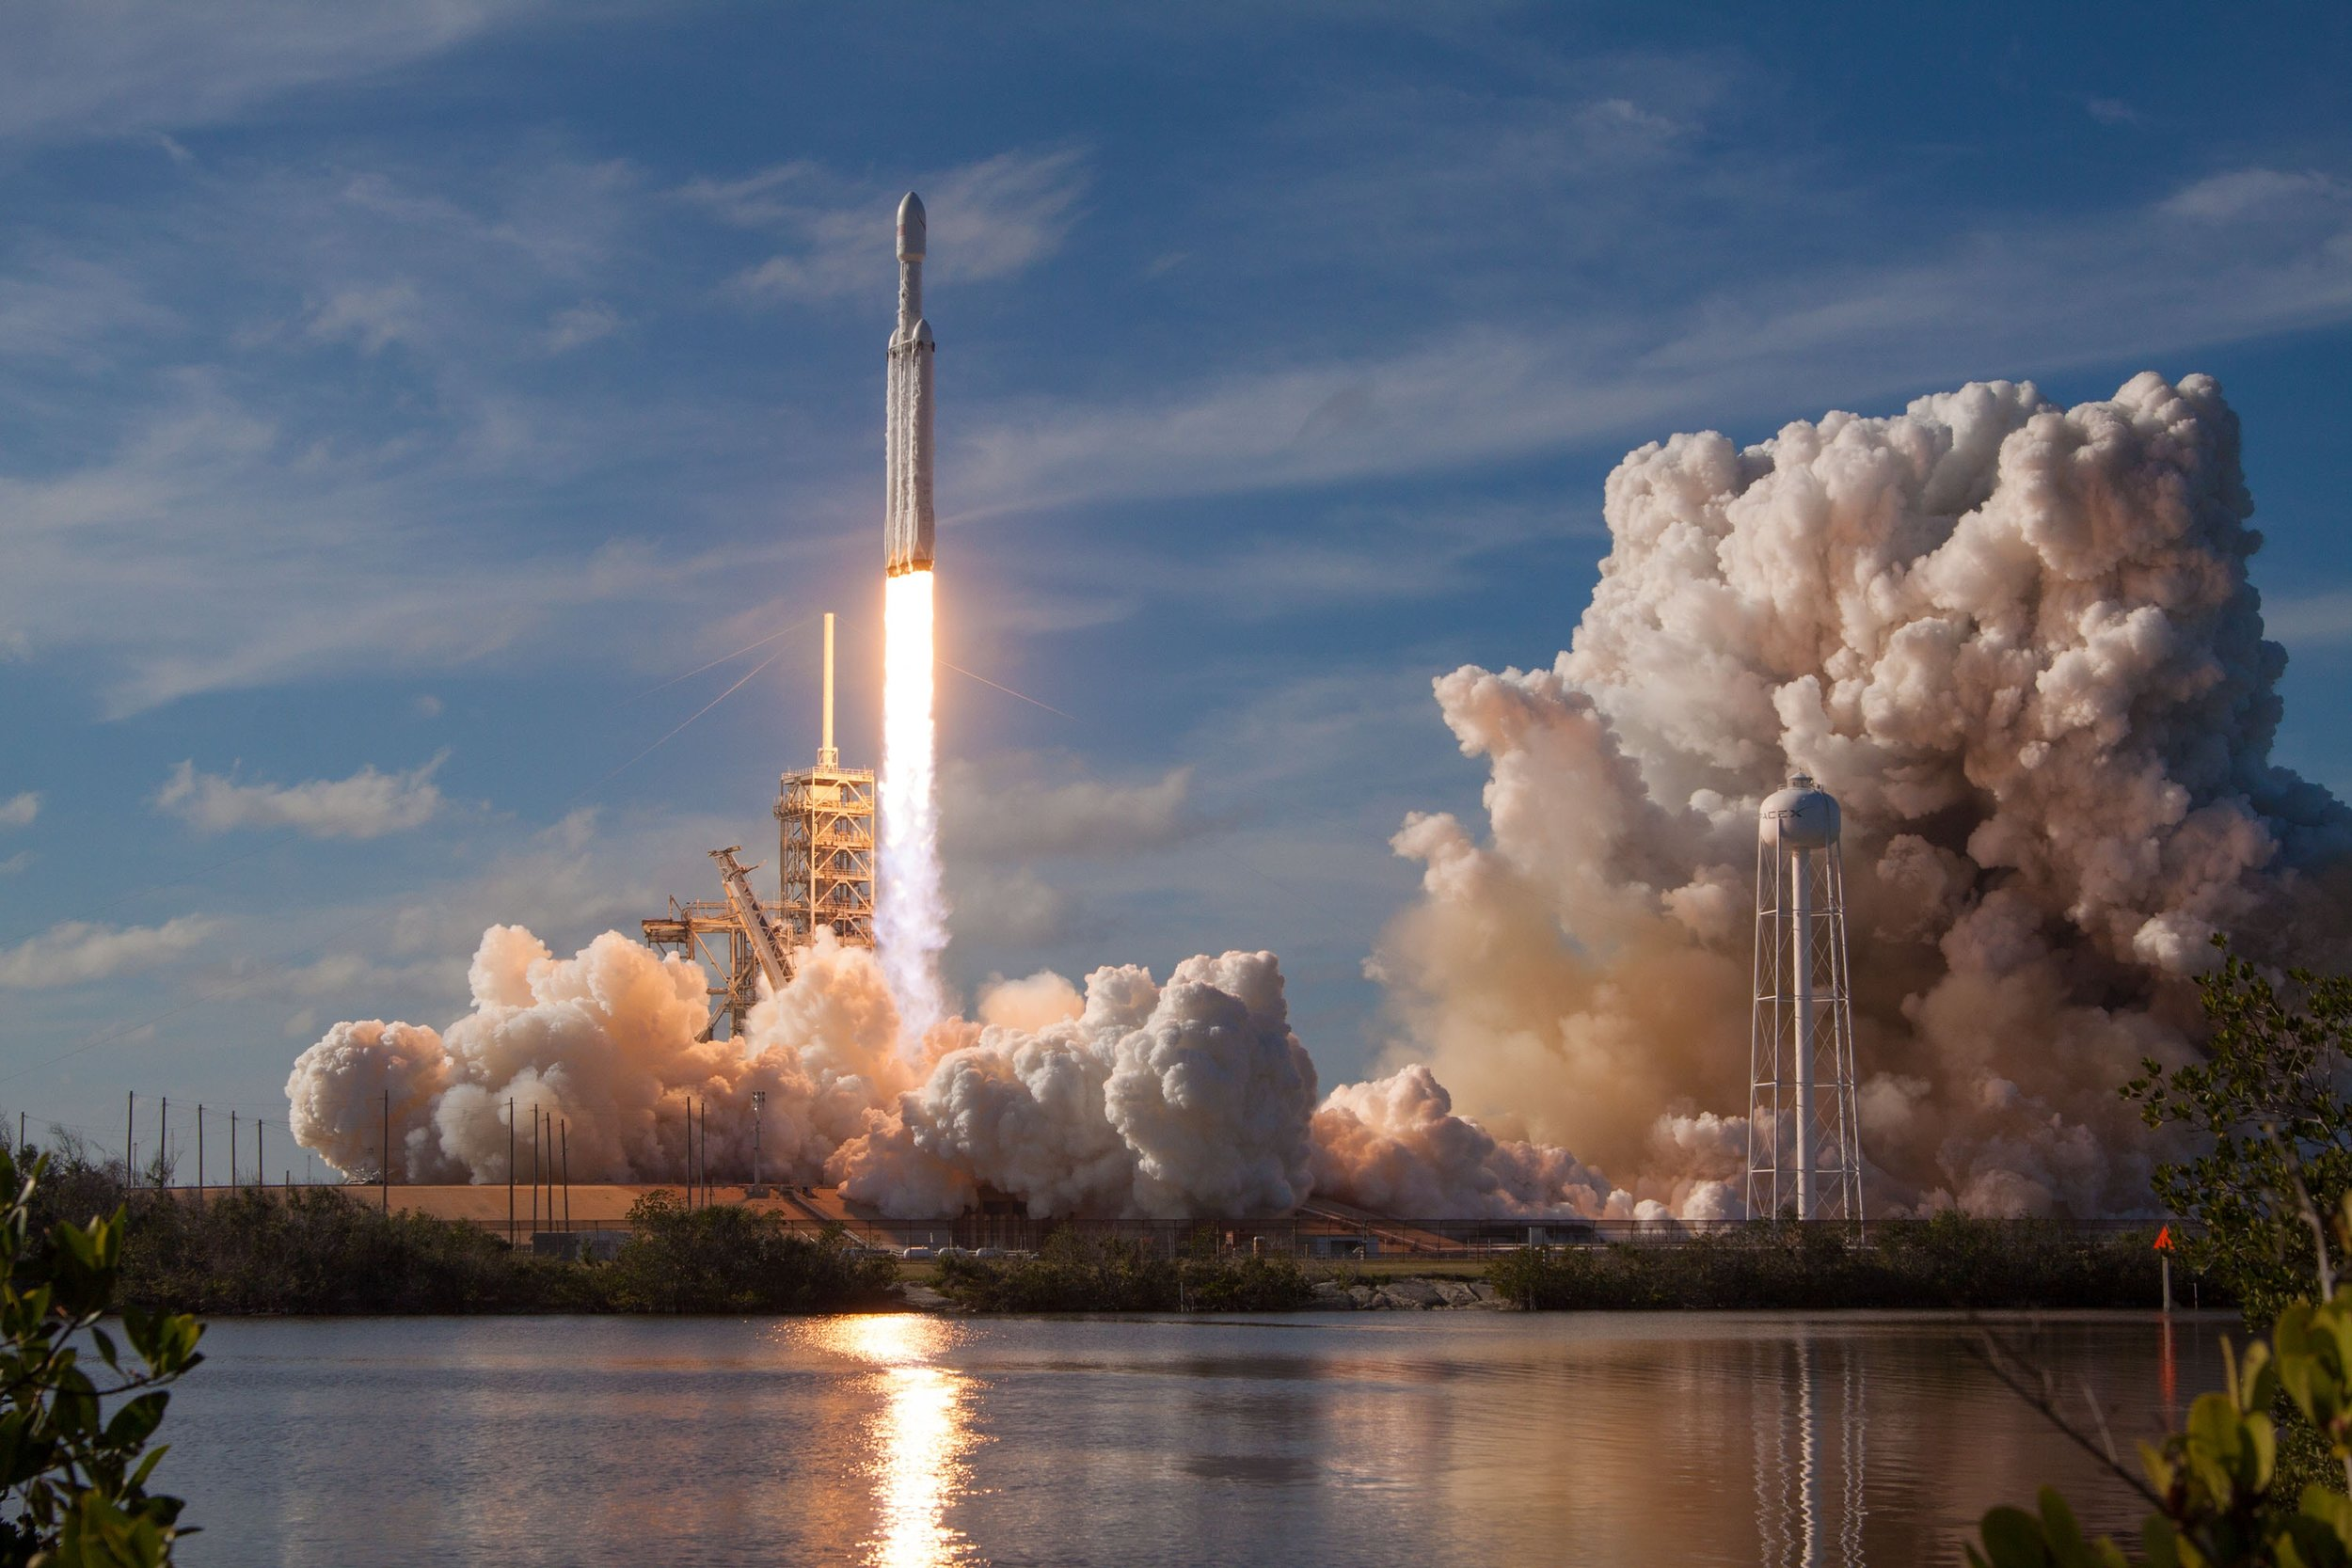 Photo by SpaceX on Unsplash  - Kennedy Space Center, Merrit Island, Florida